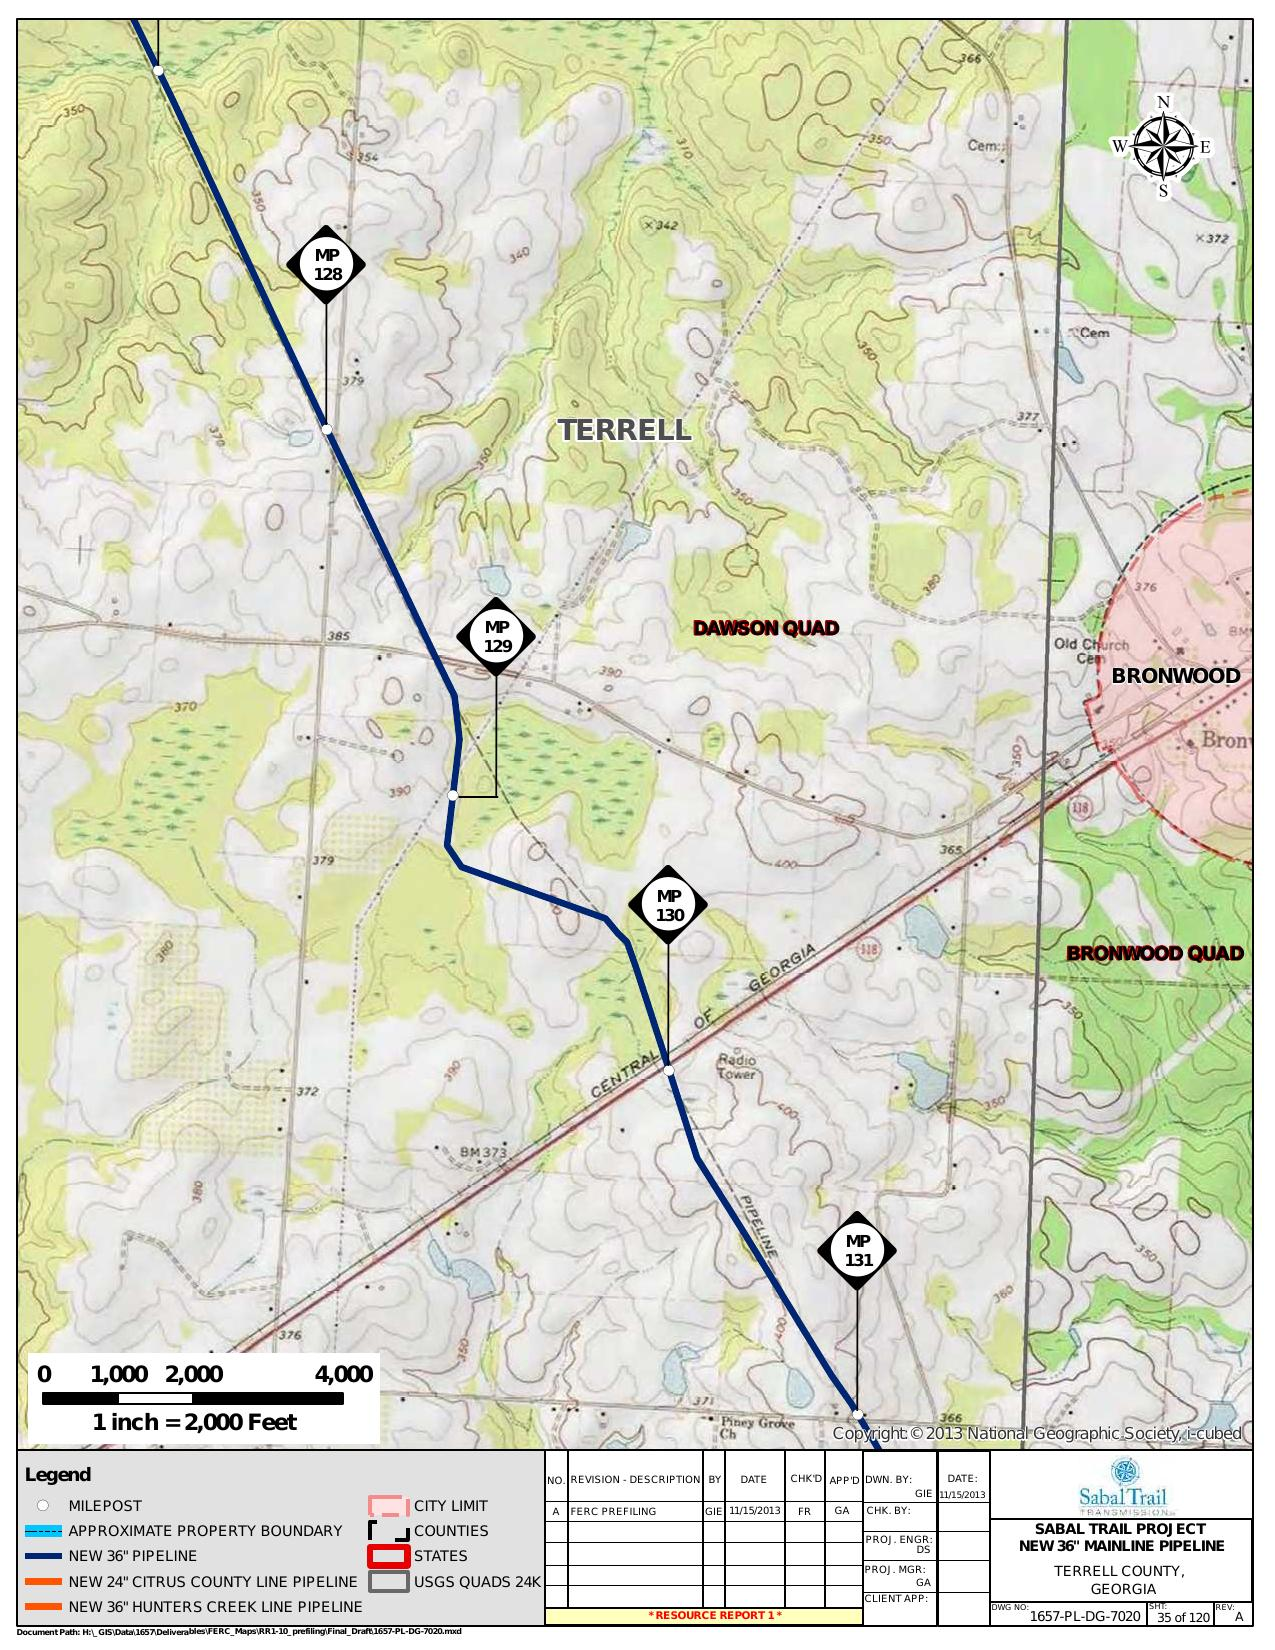 Bronwood, Terrell County, Georgia, in General Project Description, by SpectraBusters, for FERC Docket No. PF14-1-000, 15 November 2013, converted by SpectraBusters